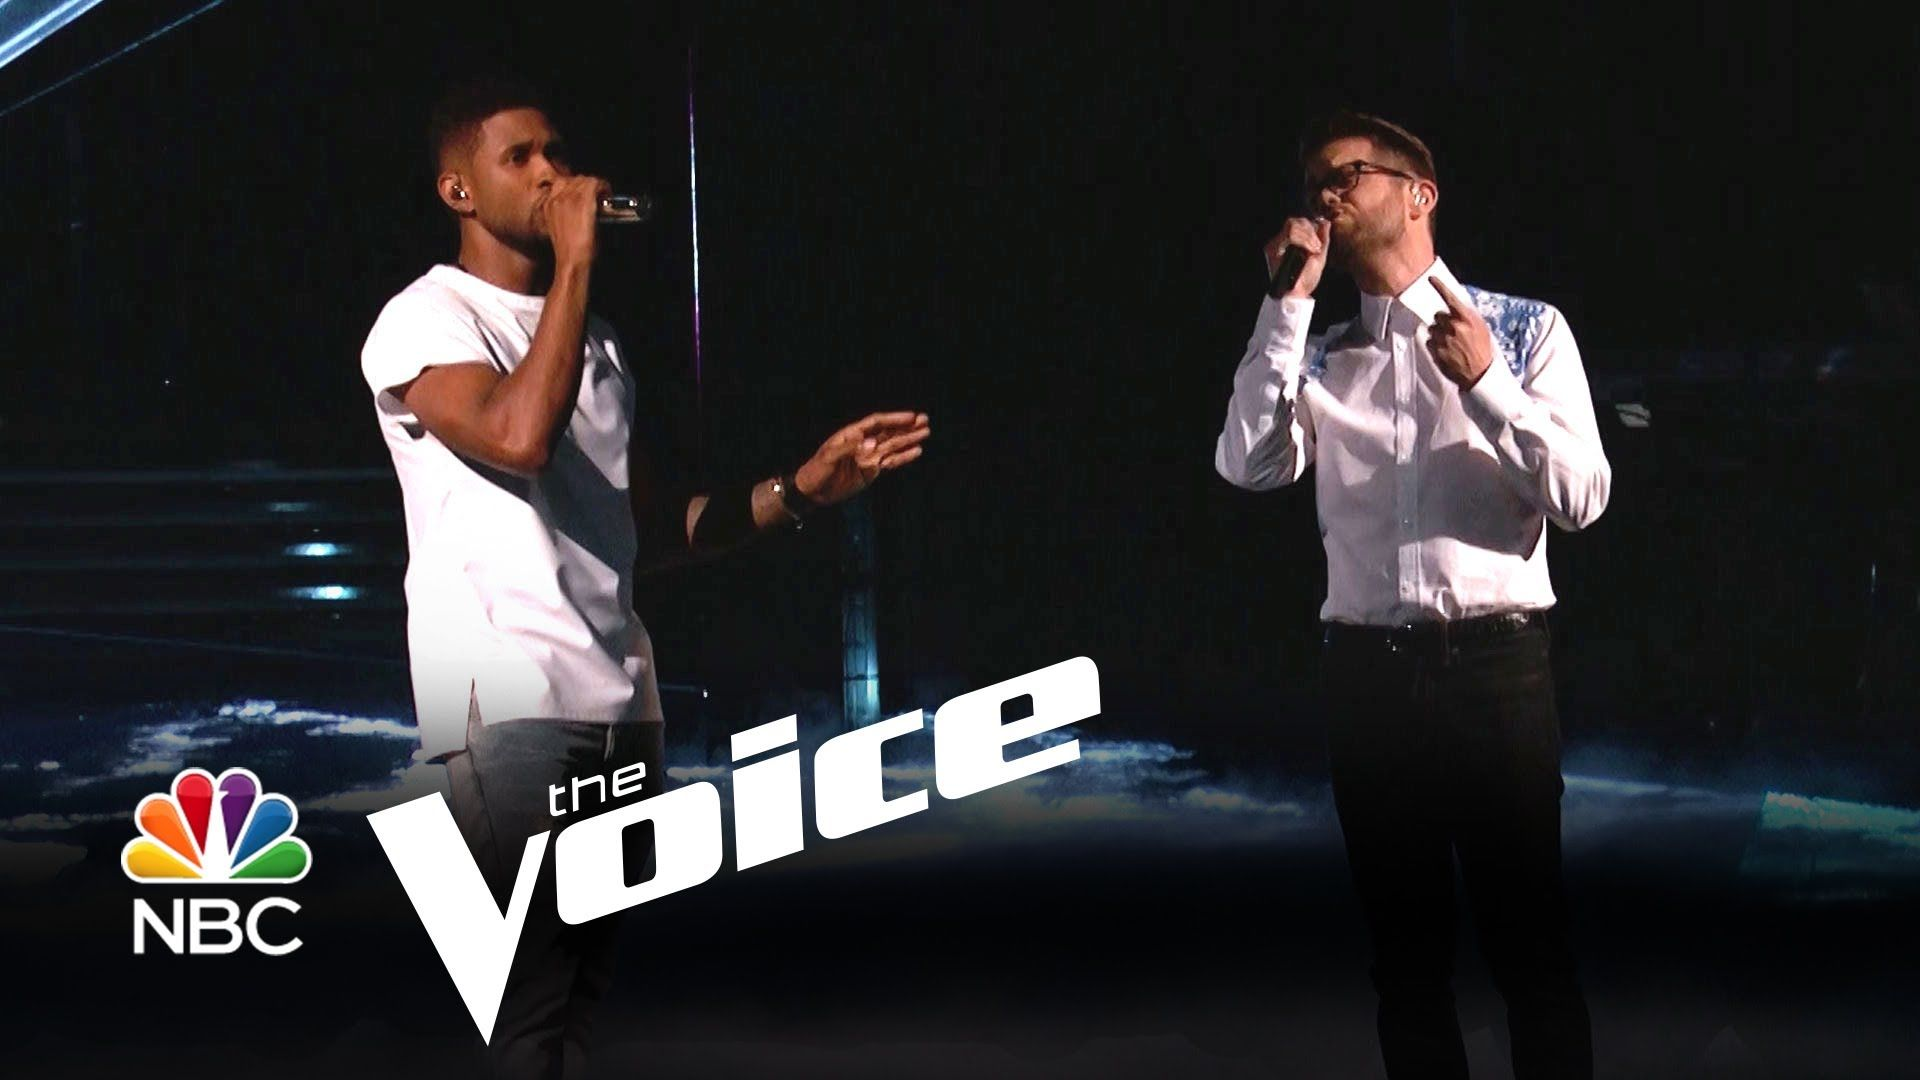 Josh Kaufman and Usher: